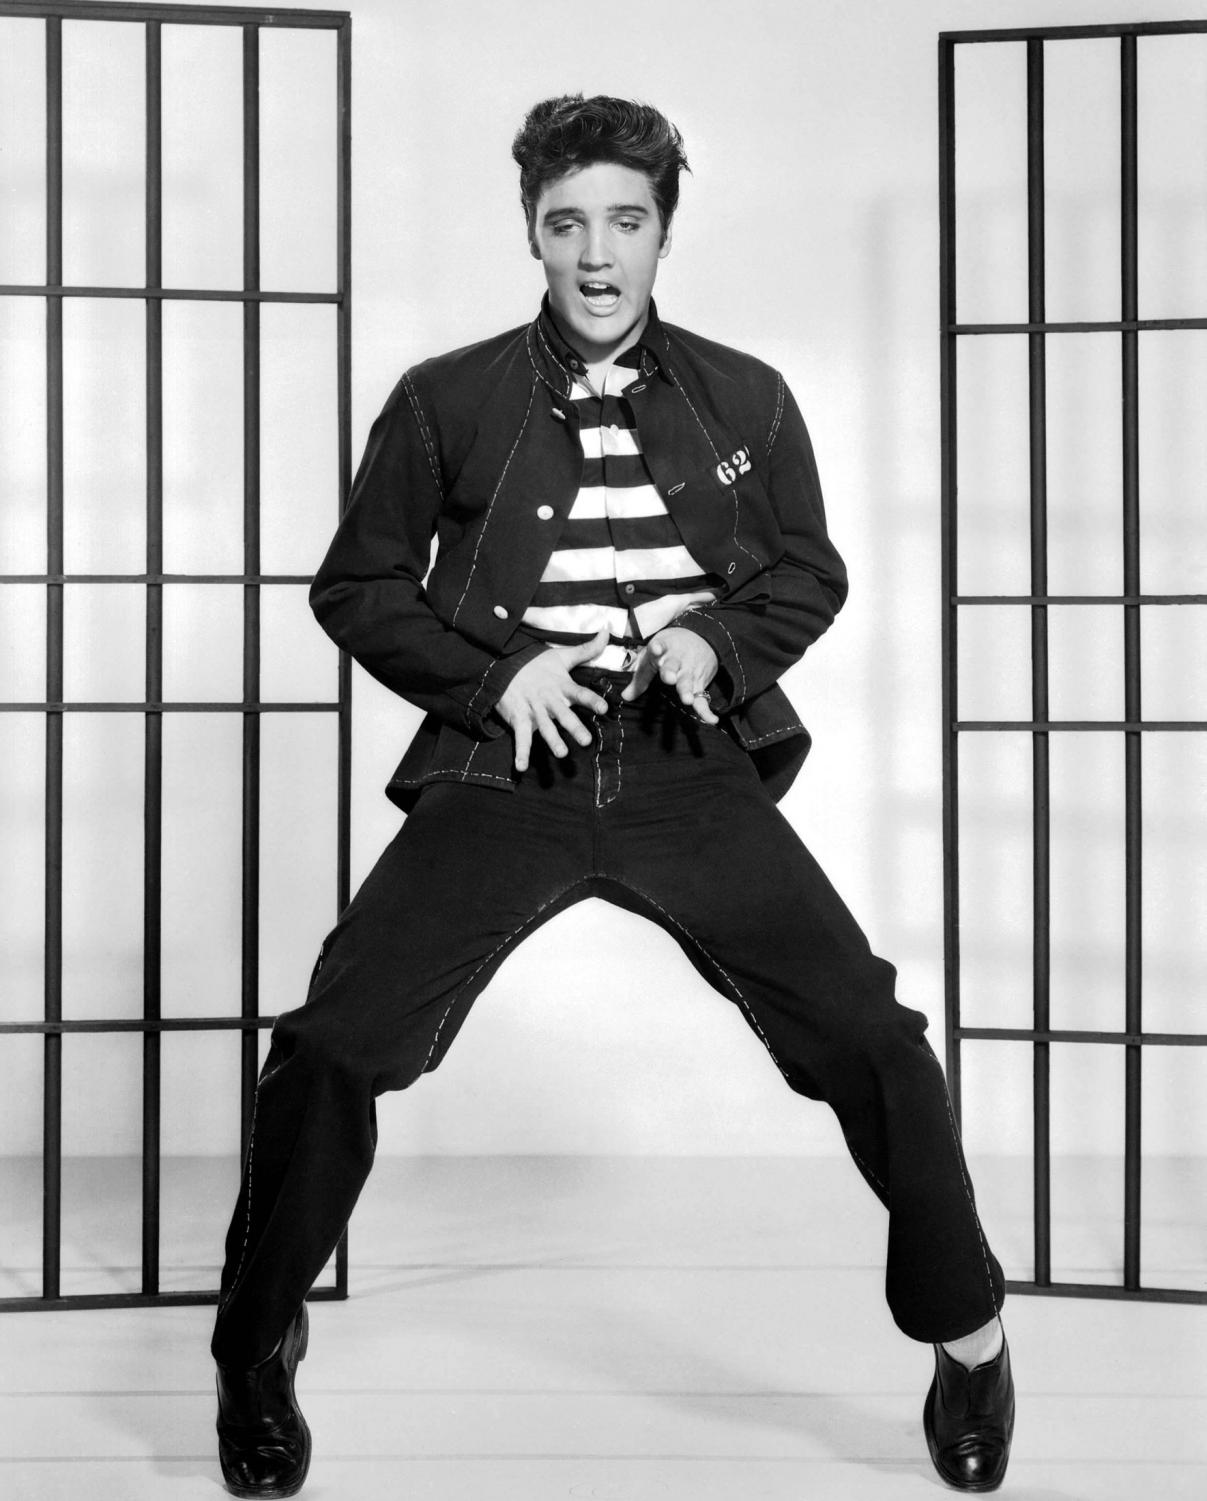 Elvis Presley is clearly the king of rock and roll!